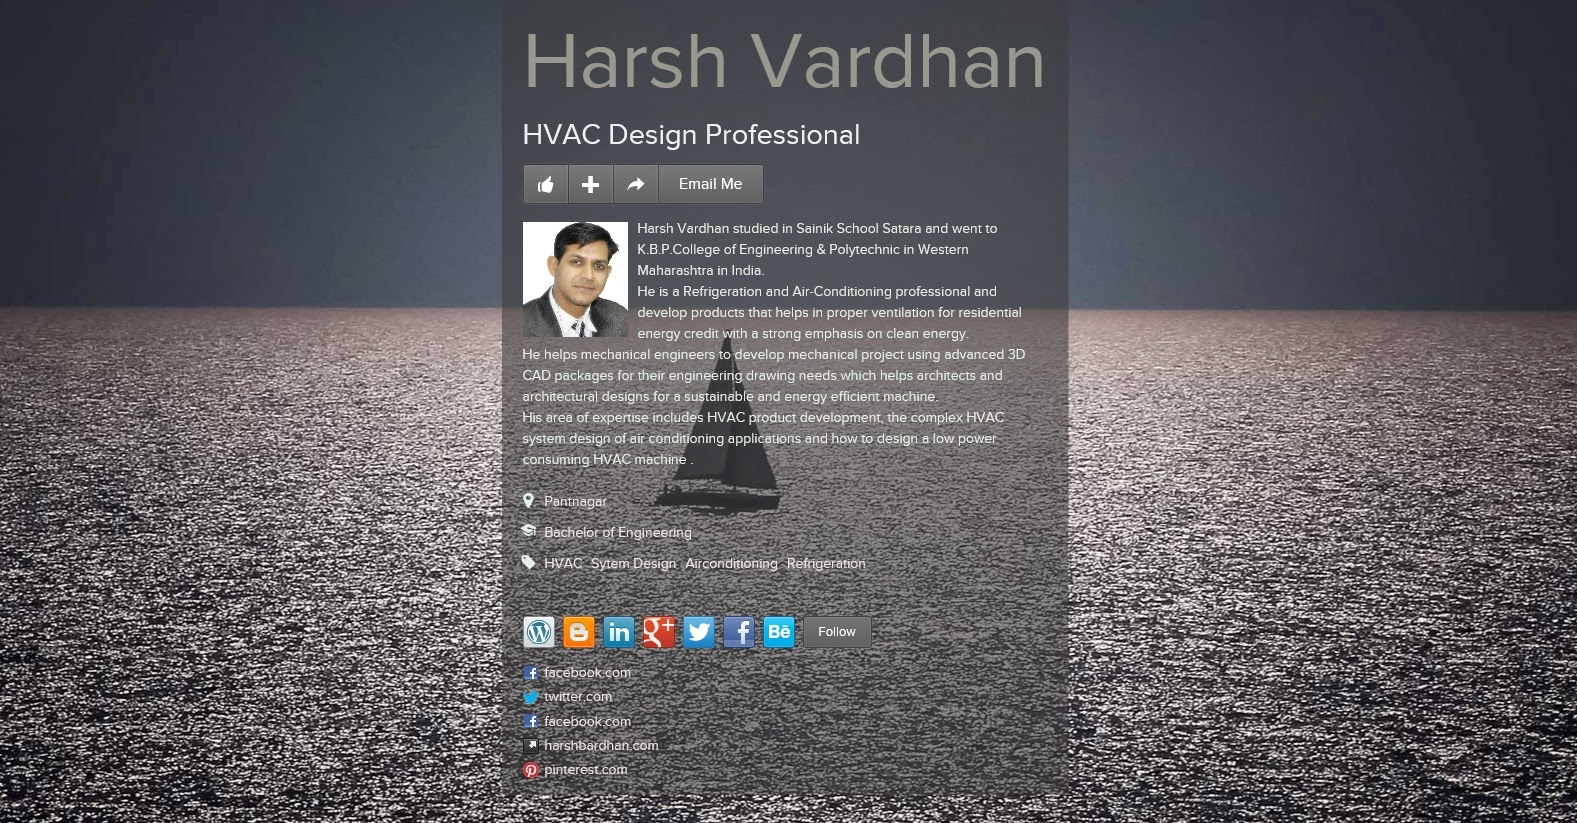 An image of Harsh Vardhan, Refigeration & HVAC Designer